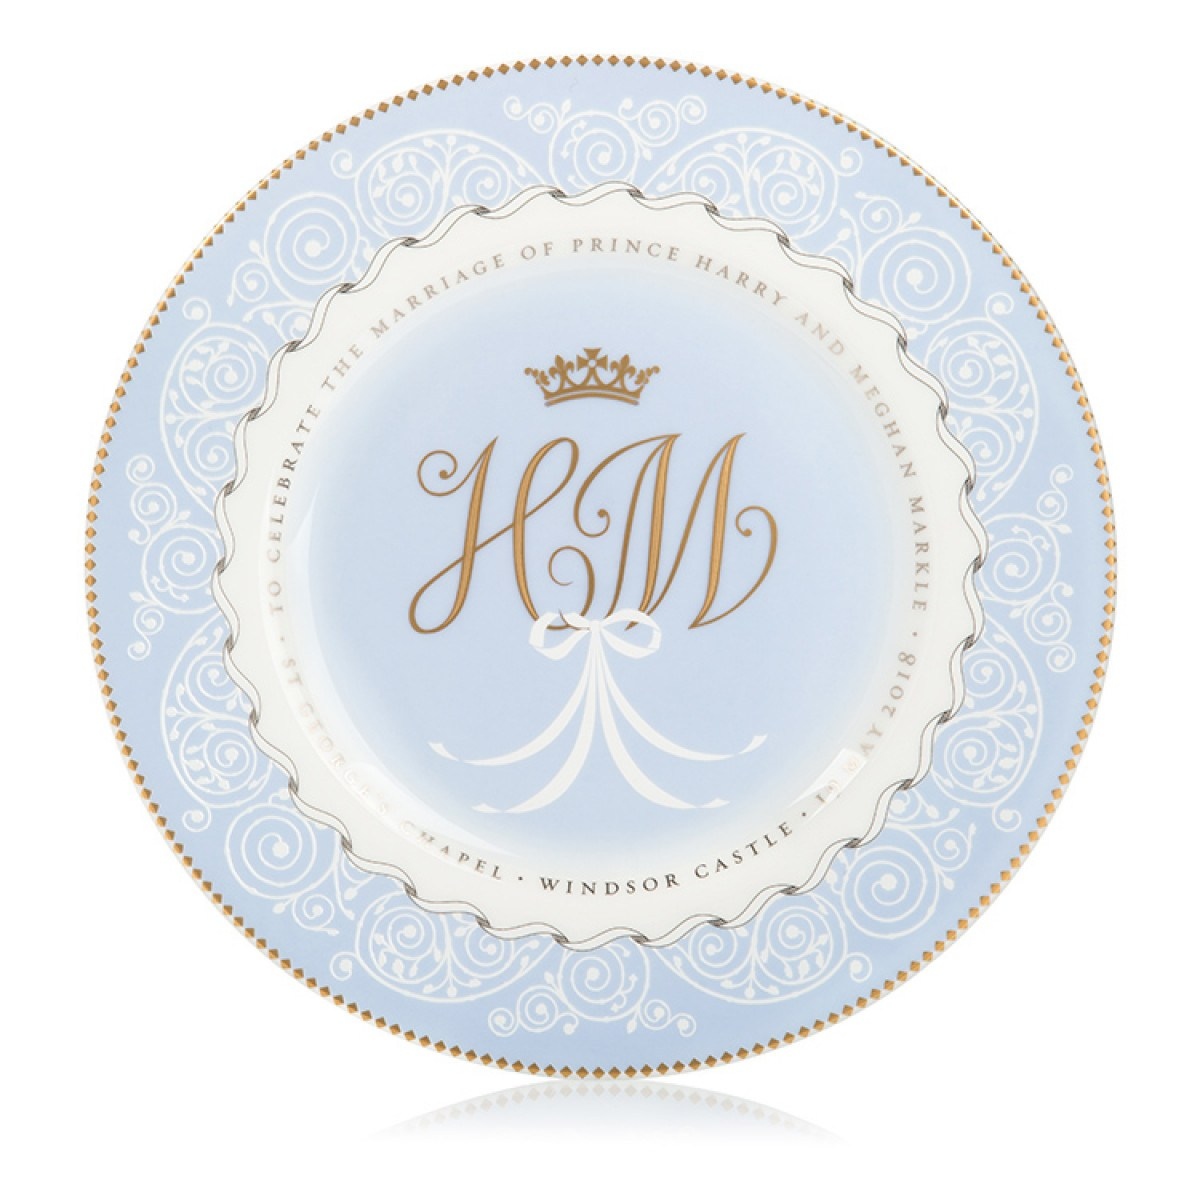 Prince Harry and Meghan Markle plate